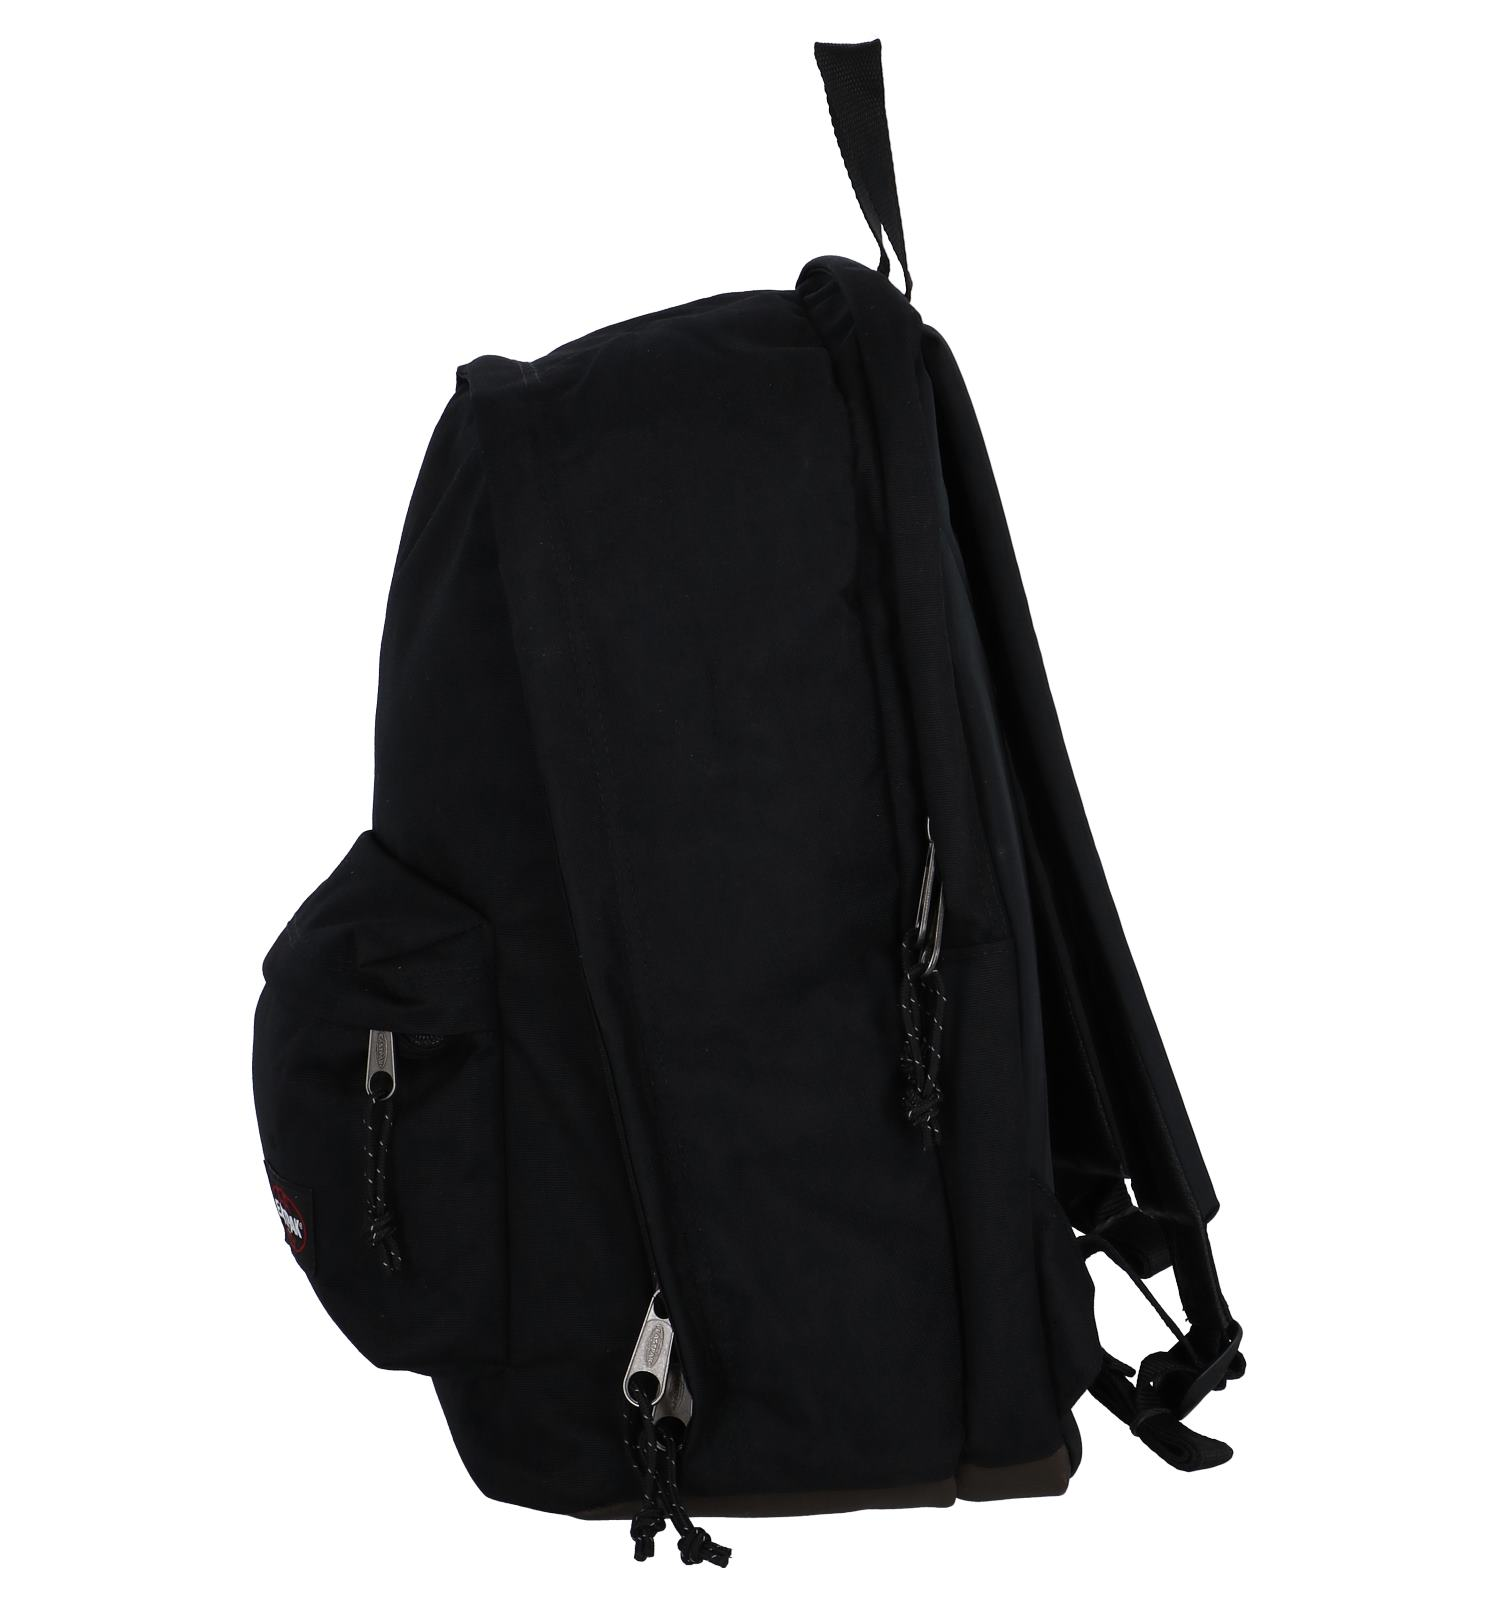 To Zwarte Wyoming Ek80b Rugzak Eastpak Back sxCQthdr